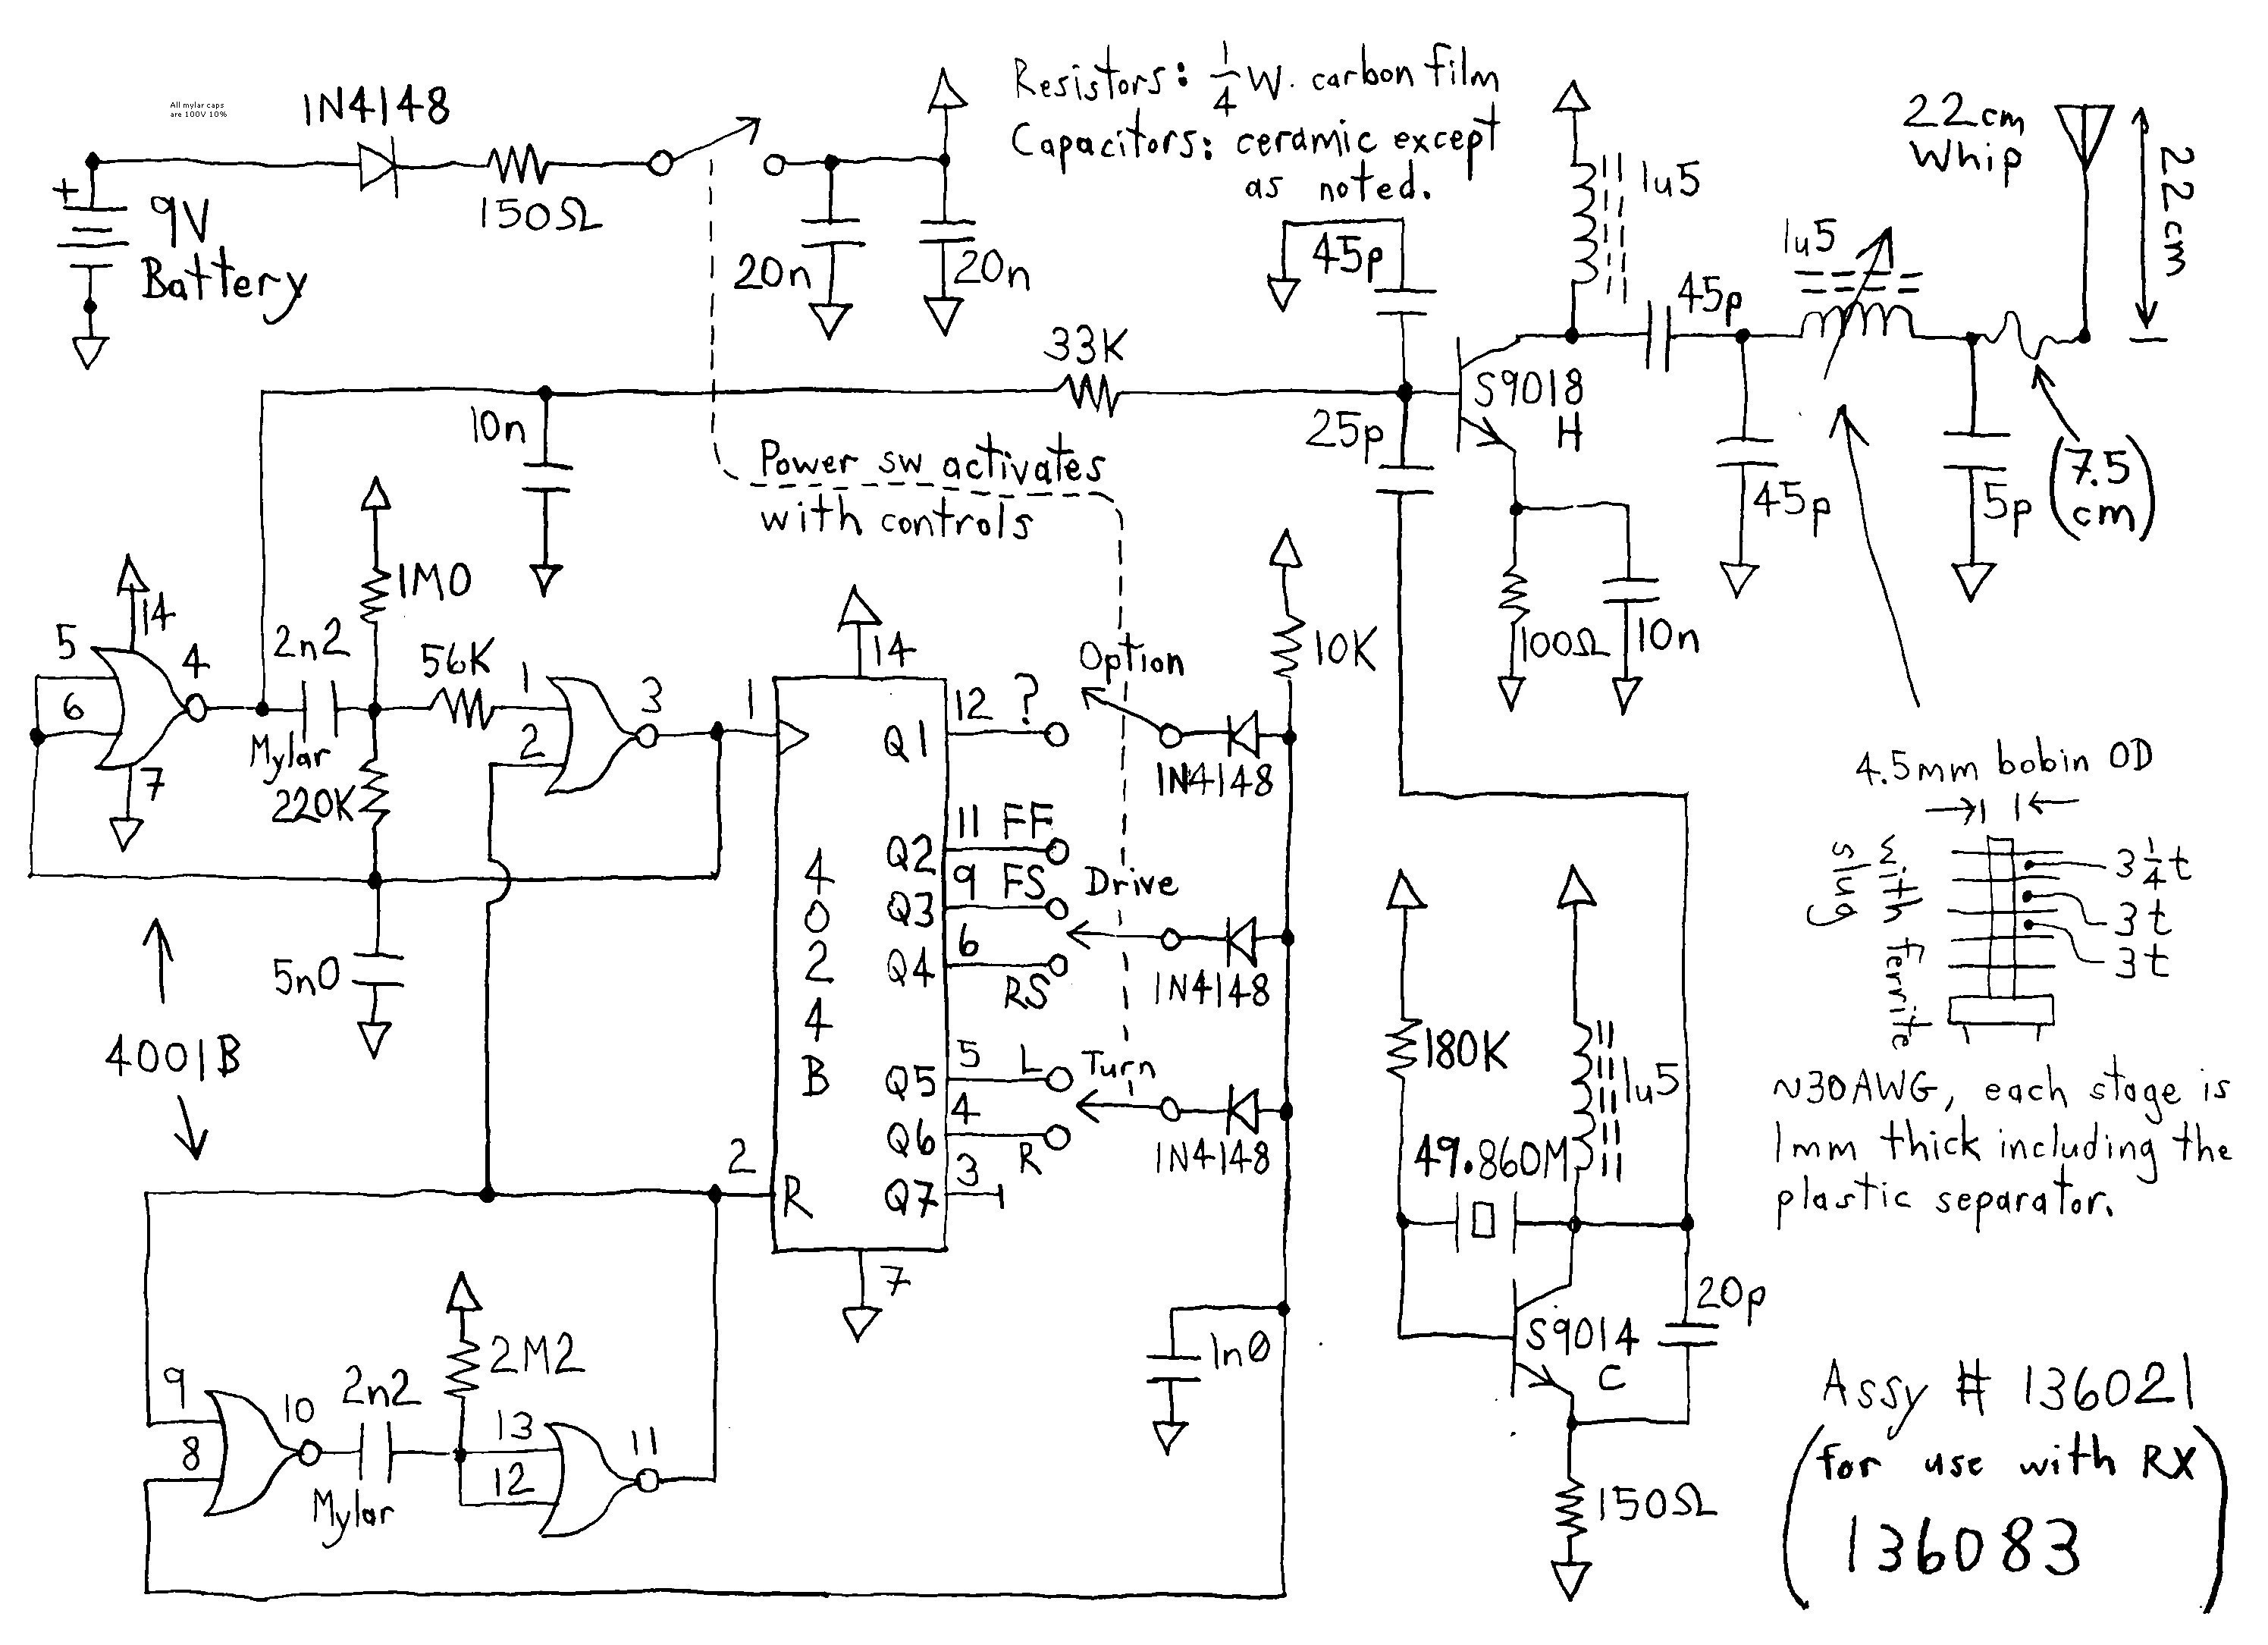 Wiring Diagram for Nest thermostat 3rd Generation Refrence Wiring Diagram Nest Fresh Nest Wireless thermostat Wiring